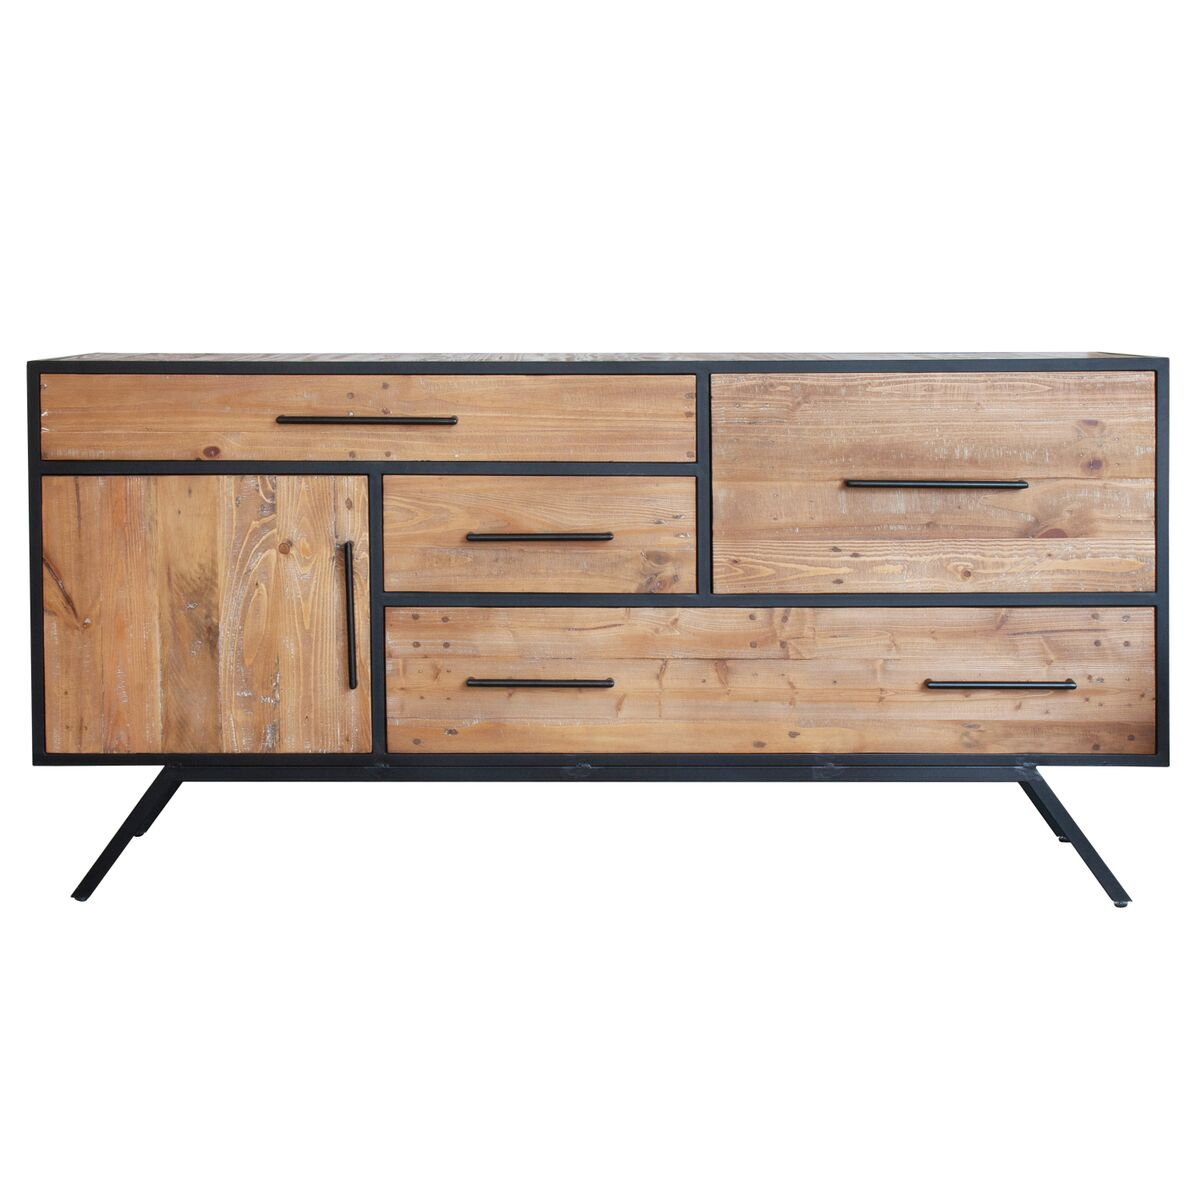 Sophisticated Storage Credenza of Black Steel and Reclaimed Pine